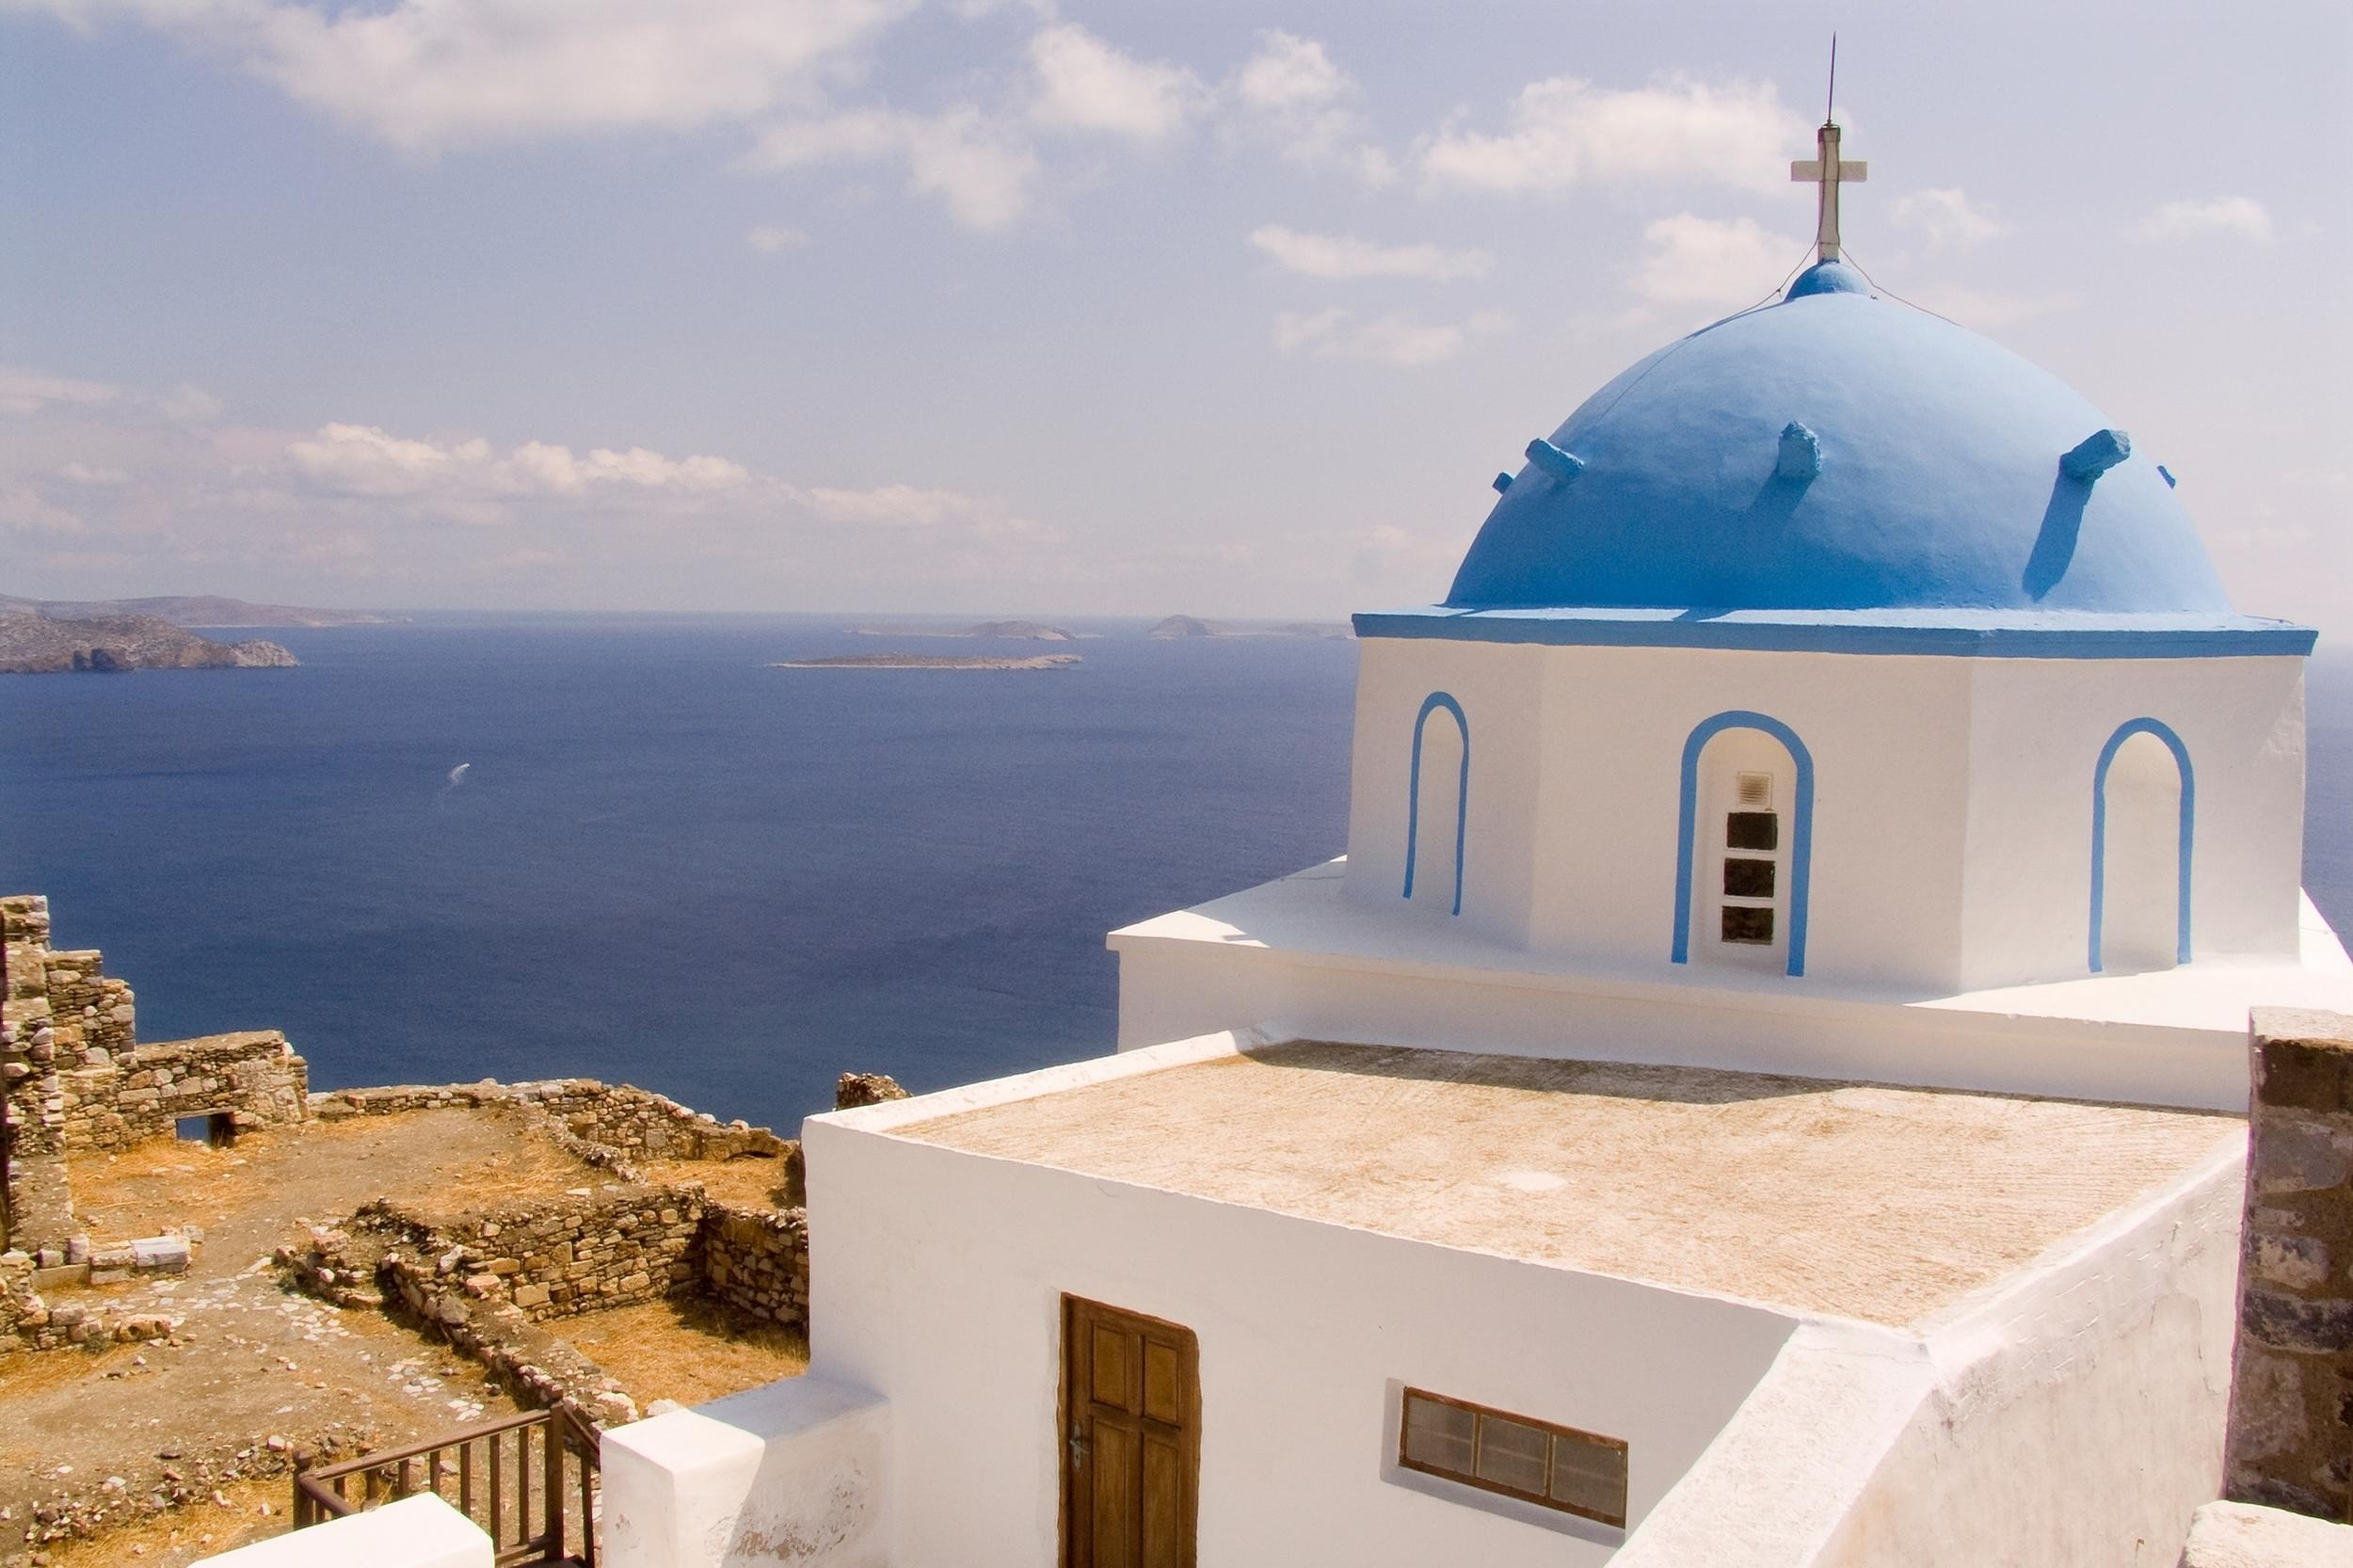 """<p>Butterfly-shaped island Astypalaia is part of the Dodecanese group in the southern Aegean and located far west of <a href=""""http://travel.aol.co.uk/guides/kos/"""" target=""""_blank"""">Kos</a>, boasting centuries-old history, whitewashed villages and sun-drenched beaches. The island is ideal for a secluded escape, a remote spot with 90 per cent of visitors from Greece. The capital town and port is Chora, one of the most picturesque towns in the Aegean. At its top is the castle towering over the town with the strikingly white domes of the Evangelistria and Agios Georgios churches visible over the walls. Around Astypalaia, the seaside village of Livadia, the Talaras Baths and their Hellenistic period mosaics, and the Chemeni Limni lagoon are must-sees.</p>"""